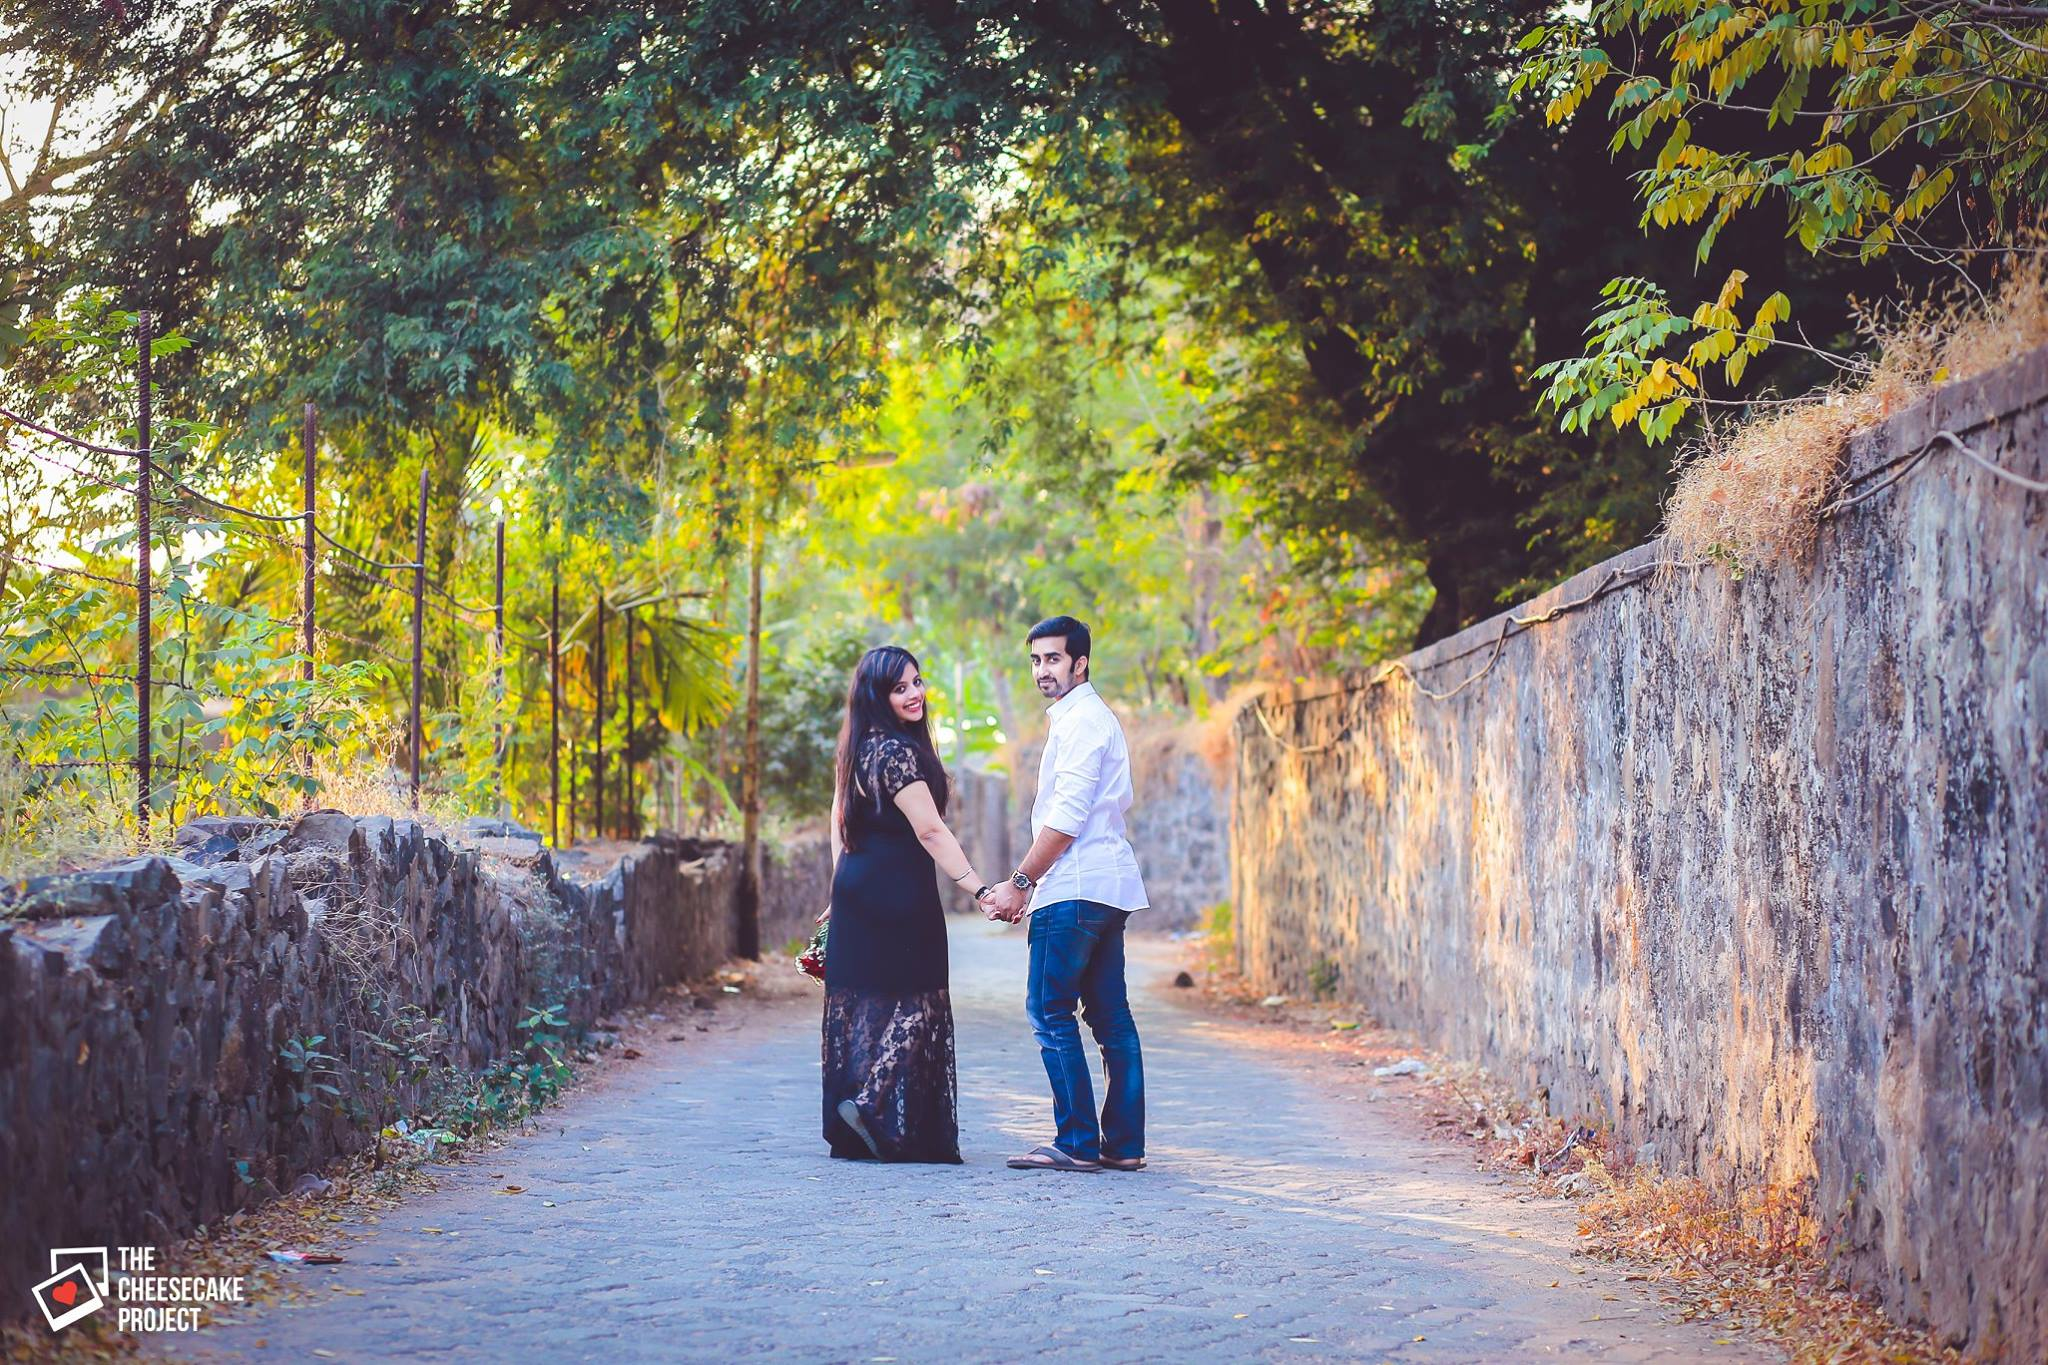 PreWedding Photoshoot location